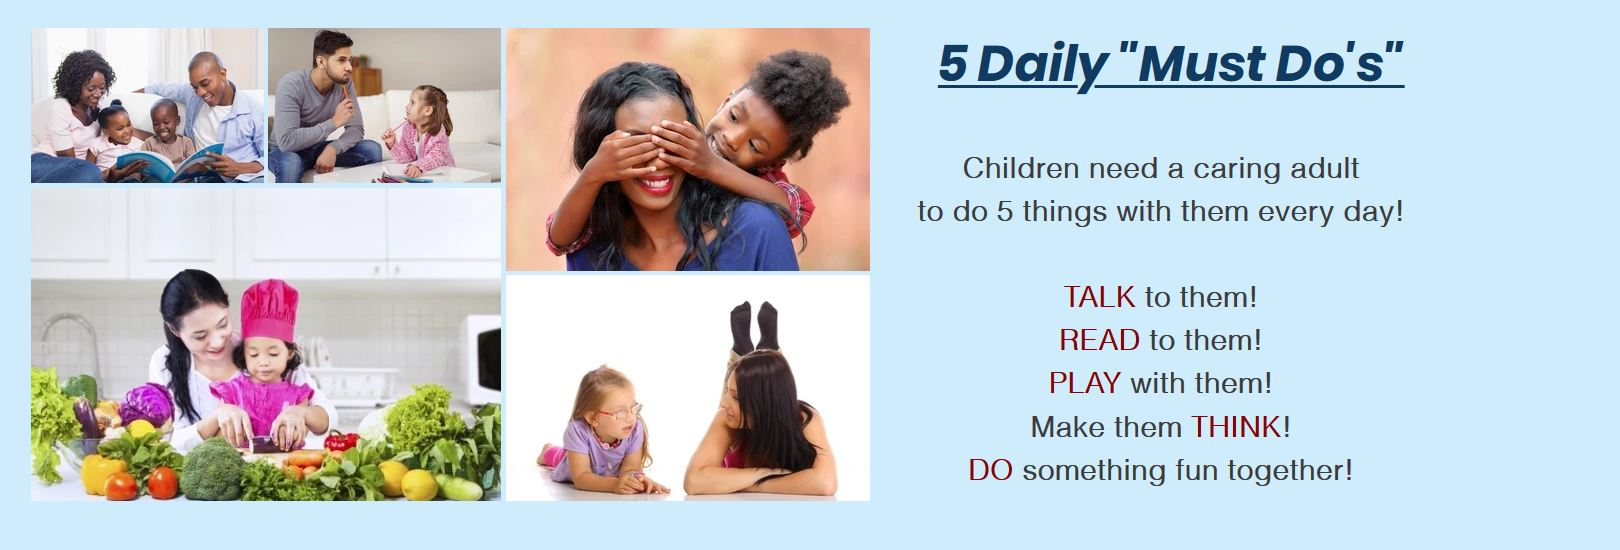 5-daily-learning-activities.jpg